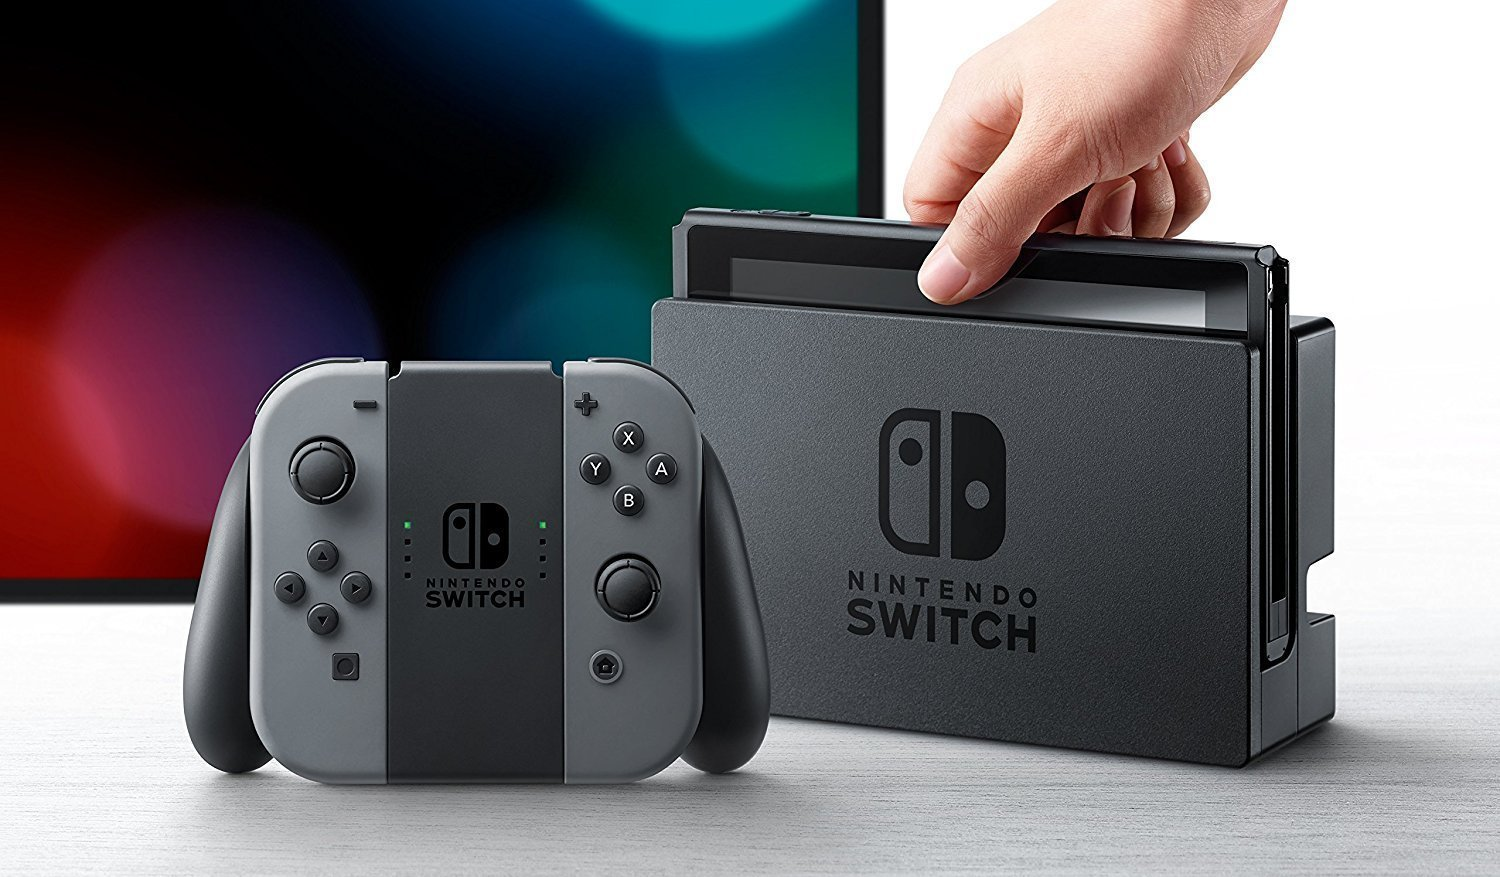 top 2017 high tech geeketc nintendo switch